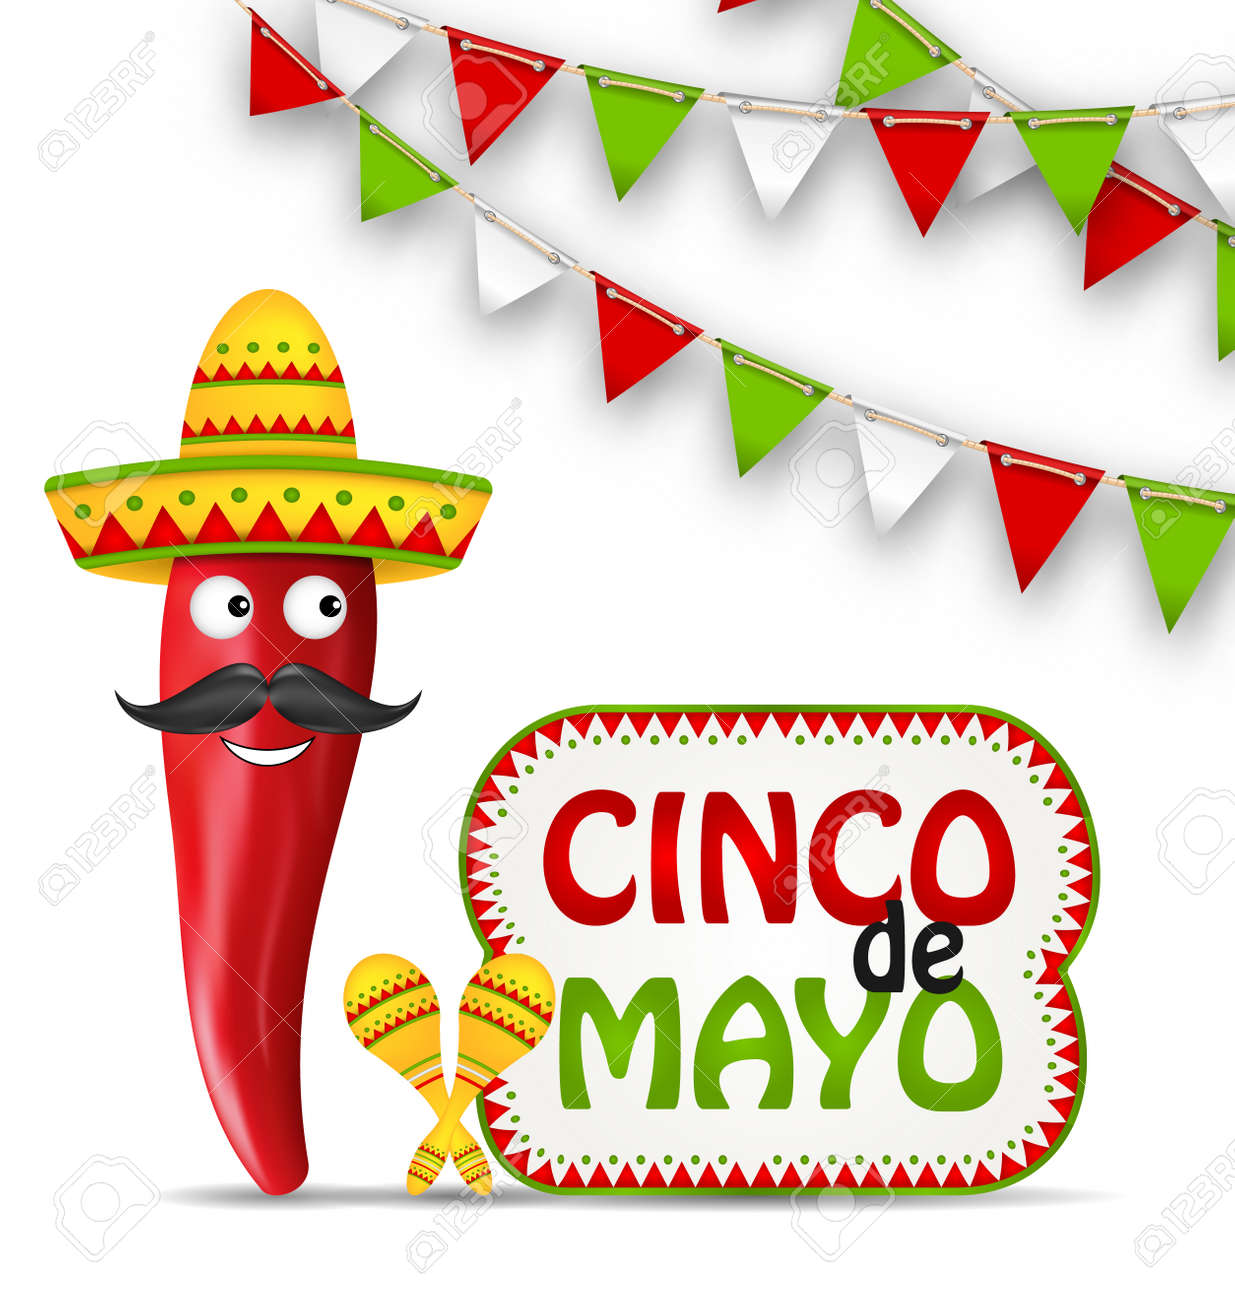 Illustration Cinco De Mayo Holiday Background with Cartoon Character of Chili Pepper, Sombrero Hat, Maracas, Bunting Decoration with Traditional Mexican Color - Vector - 55146374